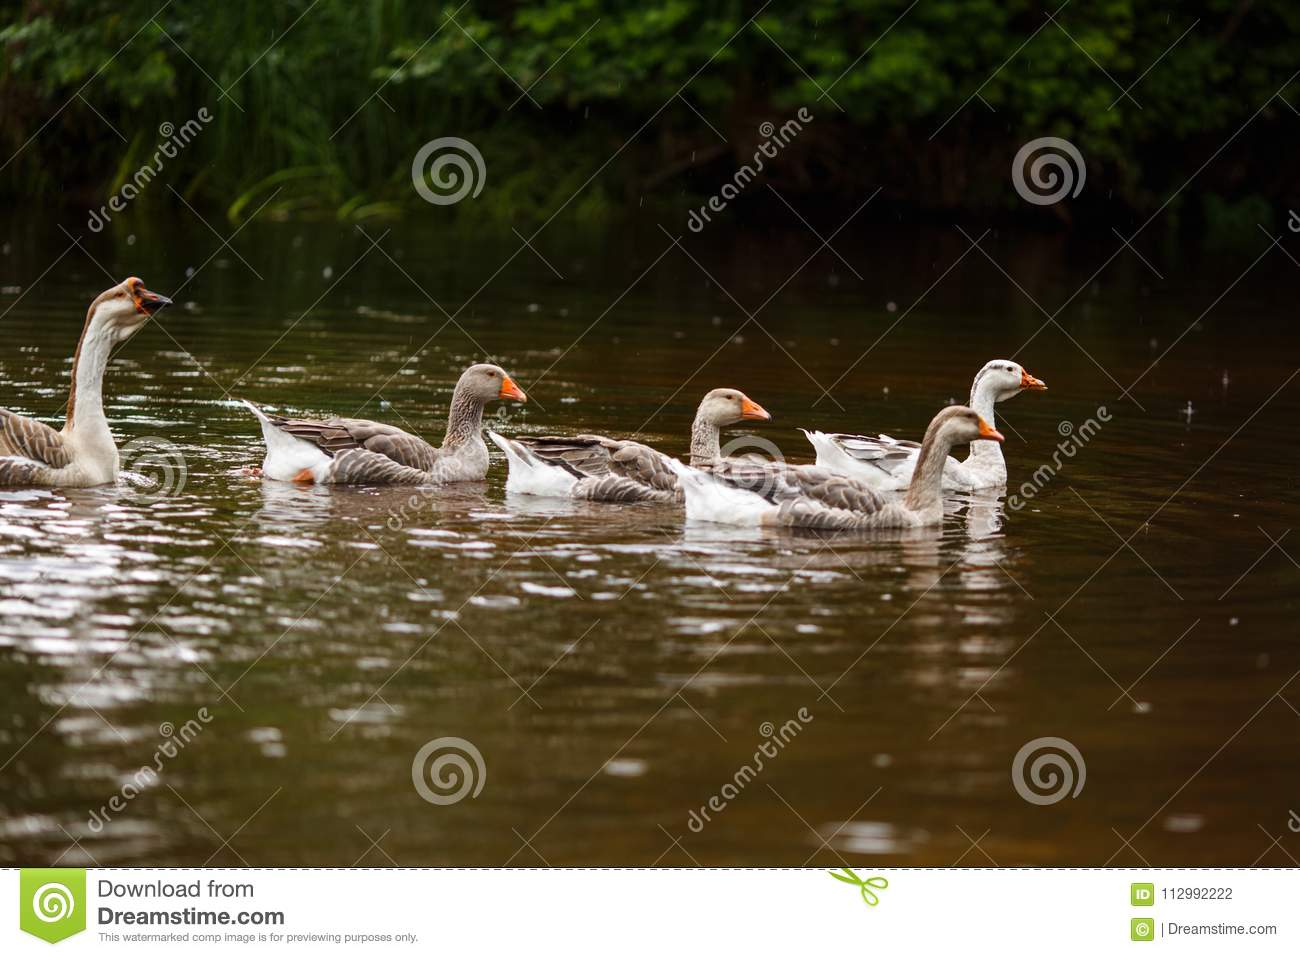 Domestic geese near a farm pond